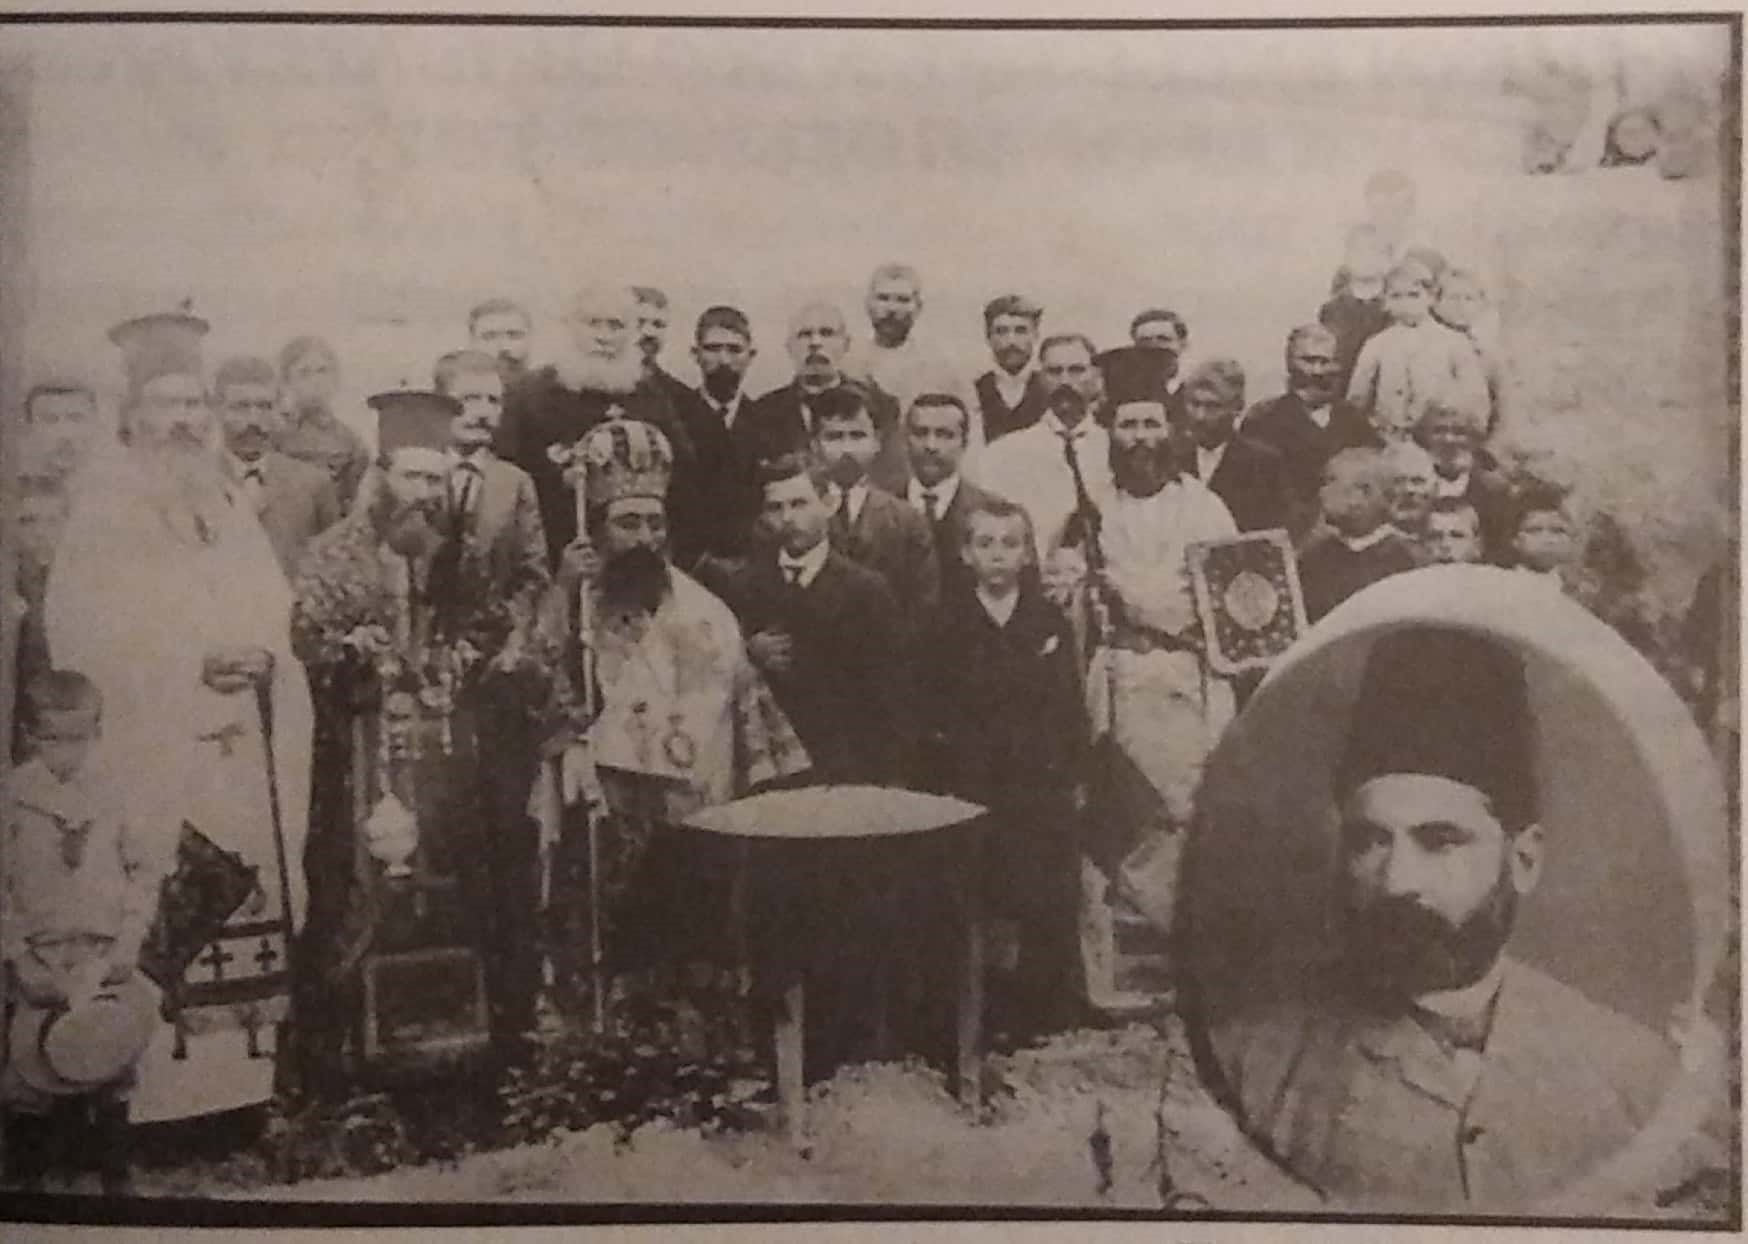 """Fig. 5. The memorial of Kostis Sakellaridis, Frangiskos' brother, with his inset image at the bottom right. Source: M. Chiotis, """"The Roots of Our Generation"""", p. 243."""